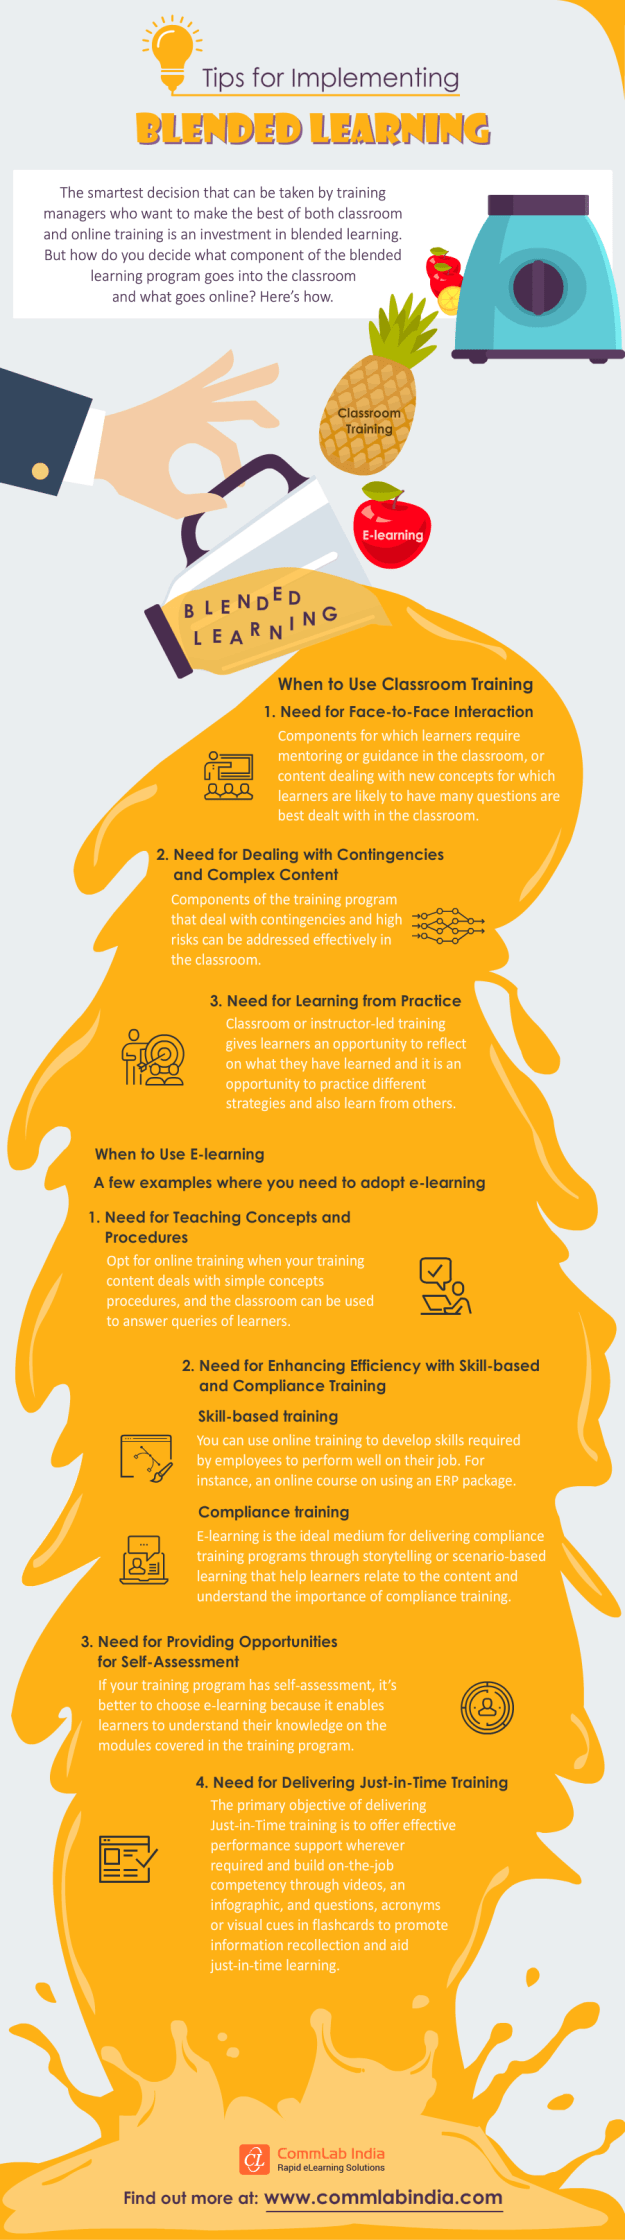 Tips For Implementing Blended Learning